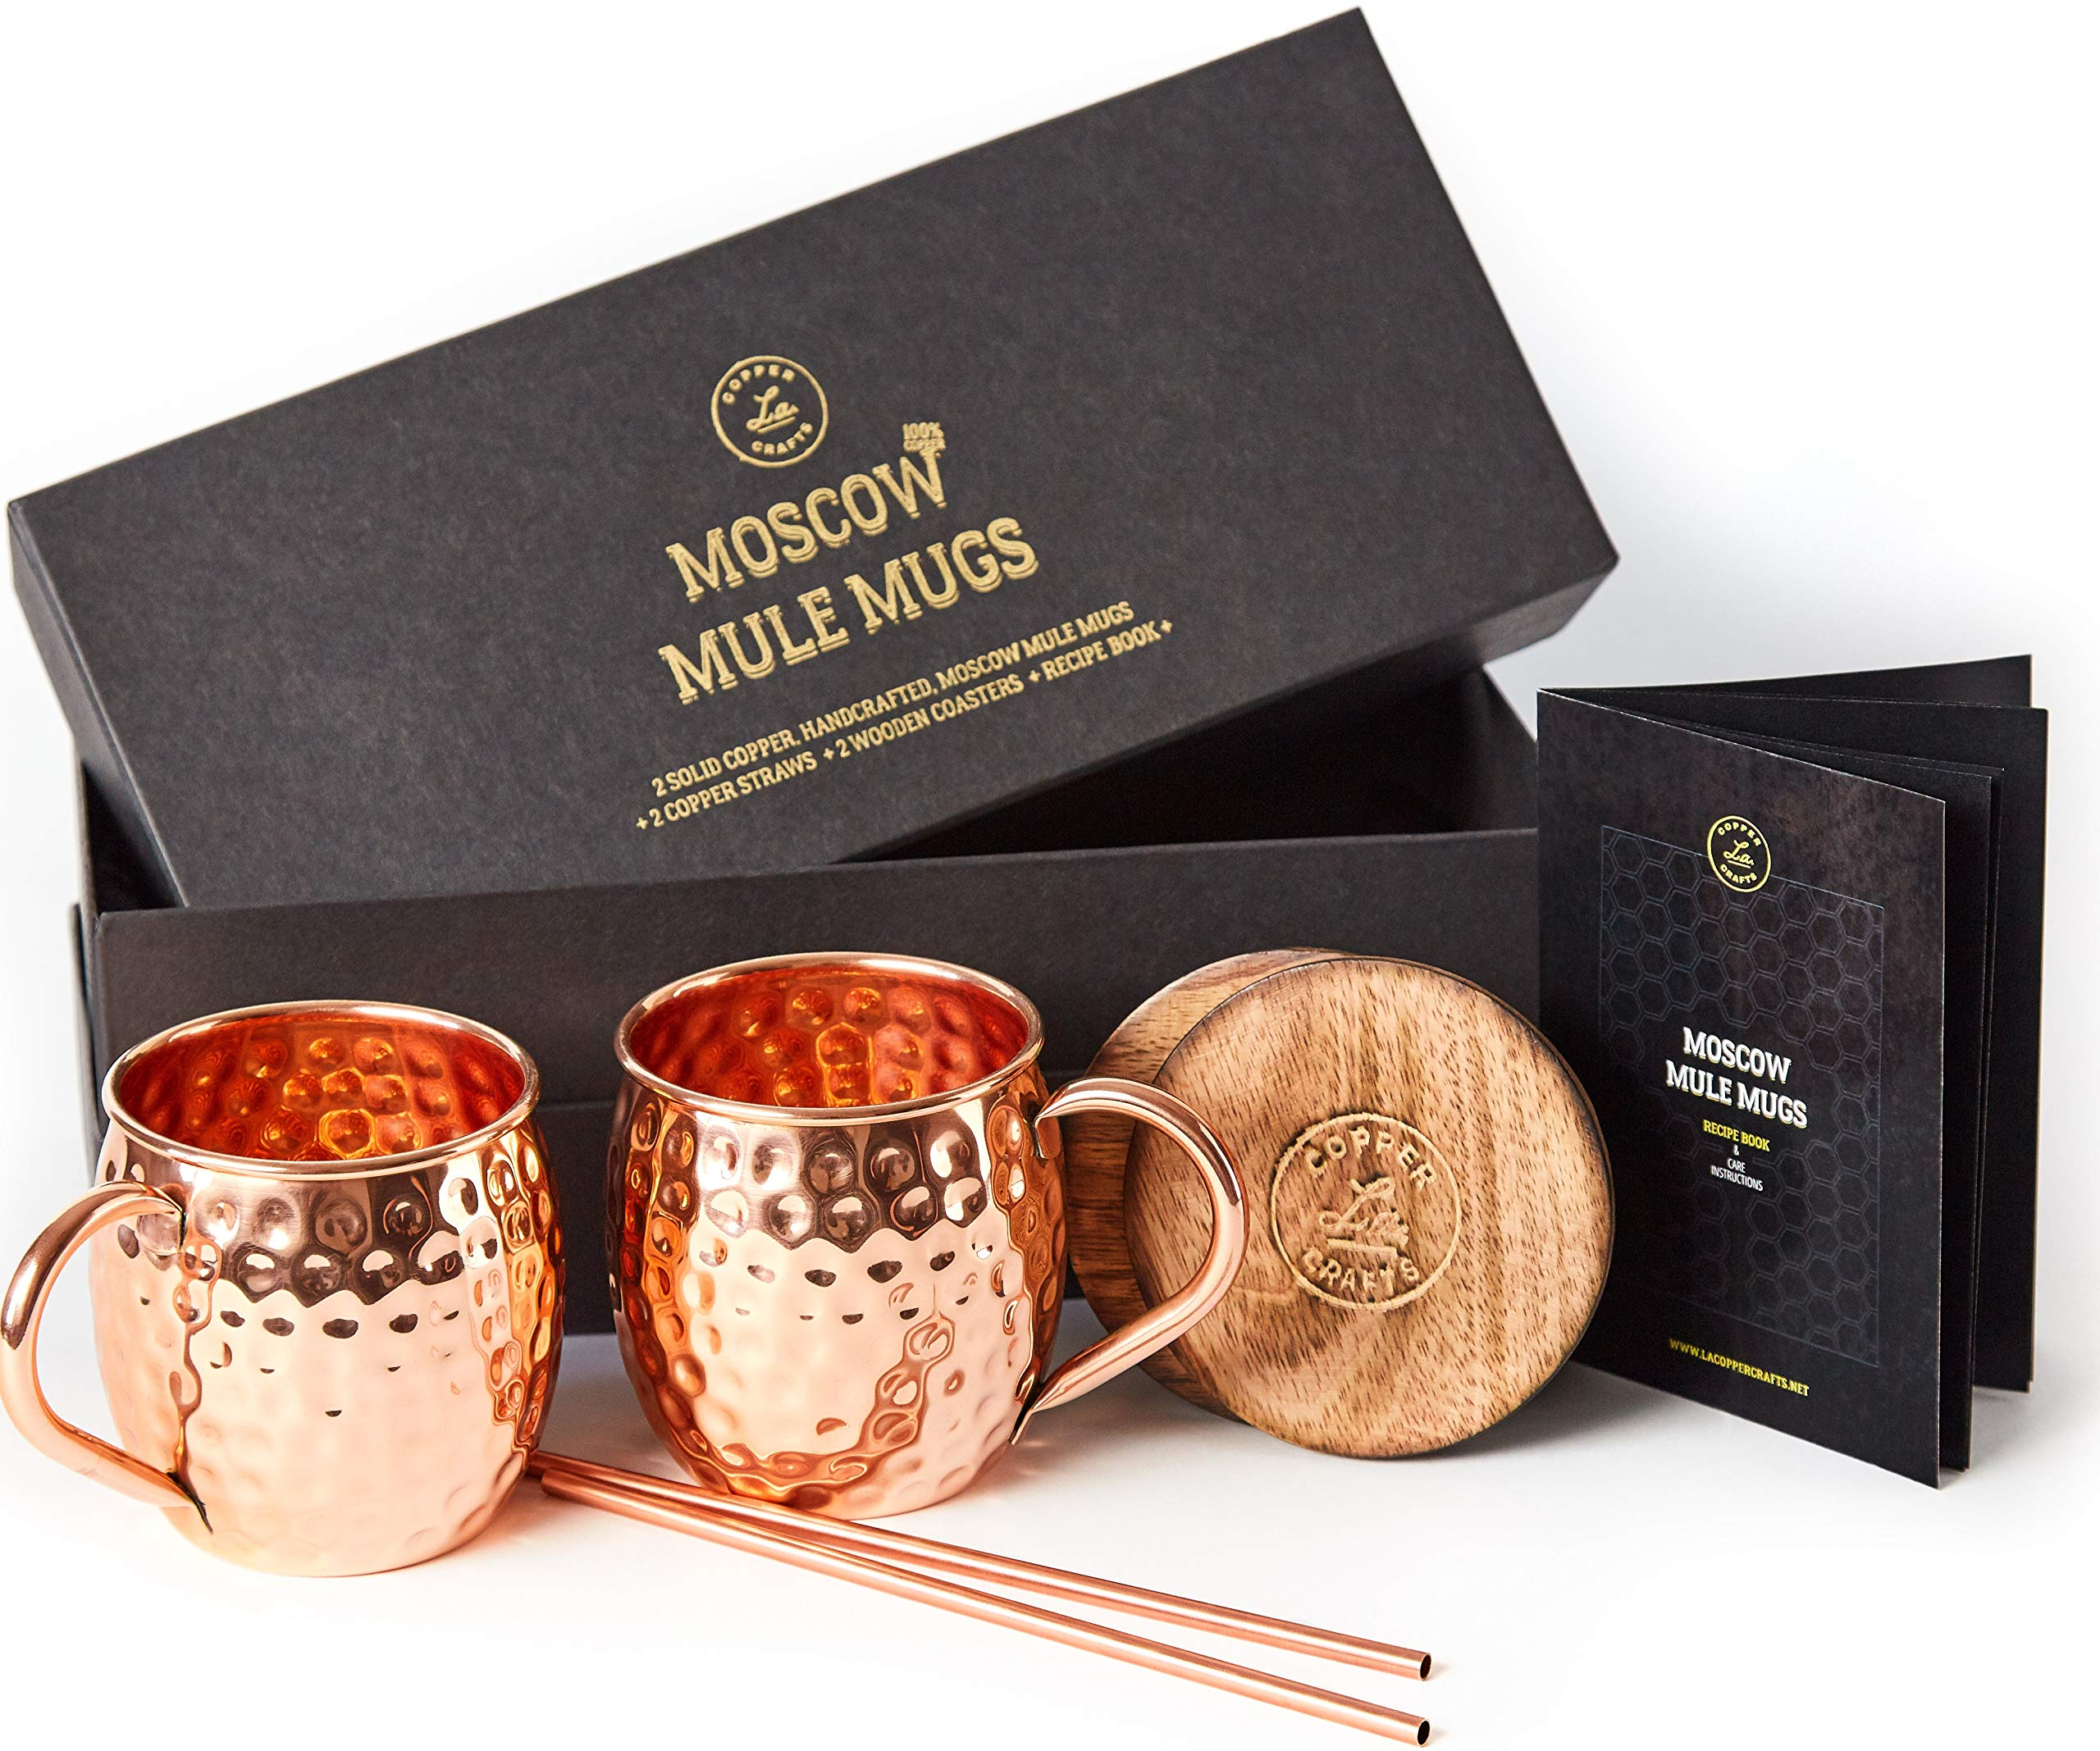 Moscow Mule Copper Mugs Set - 2 Authentic Handcrafted Copper Mugs (16 oz.), 2 Straws, 2 Solid Wood Coasters and Recipe Book - Gift Box Included by L.A. Copper Crafts